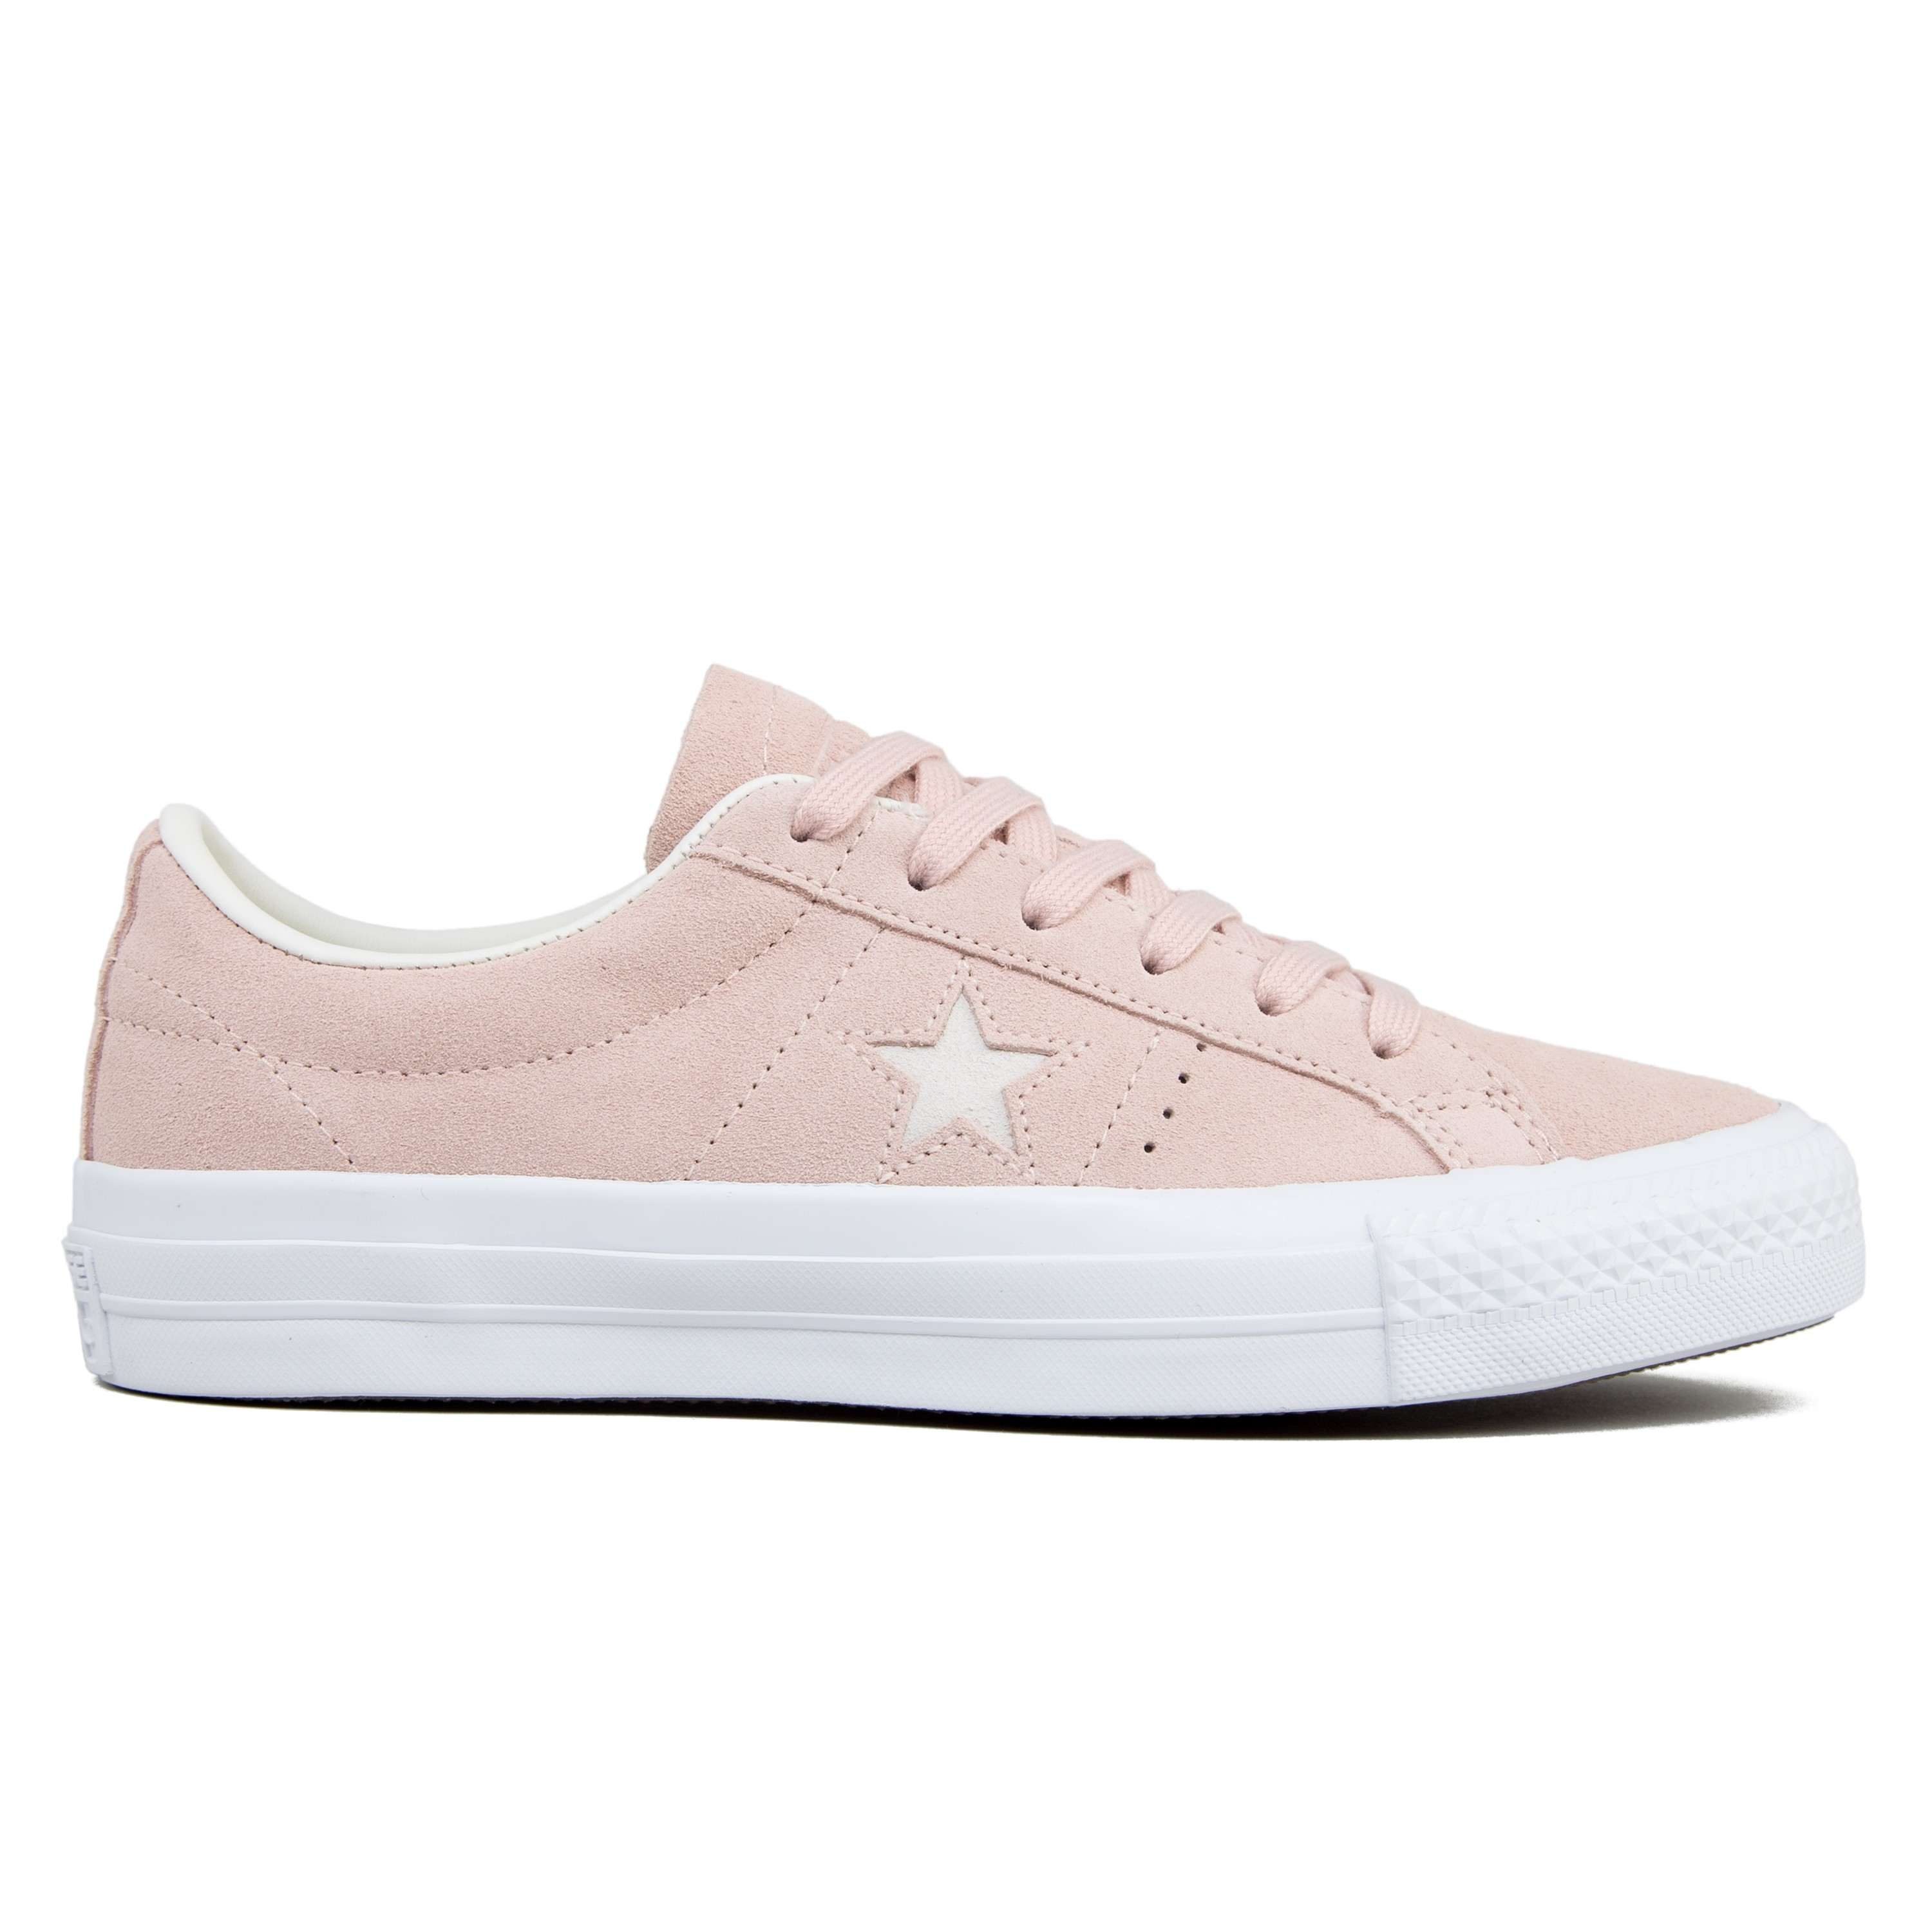 c4a71bc206f7 Converse Cons One Star Pro OX (Dusk Pink Egret White) - Consortium.